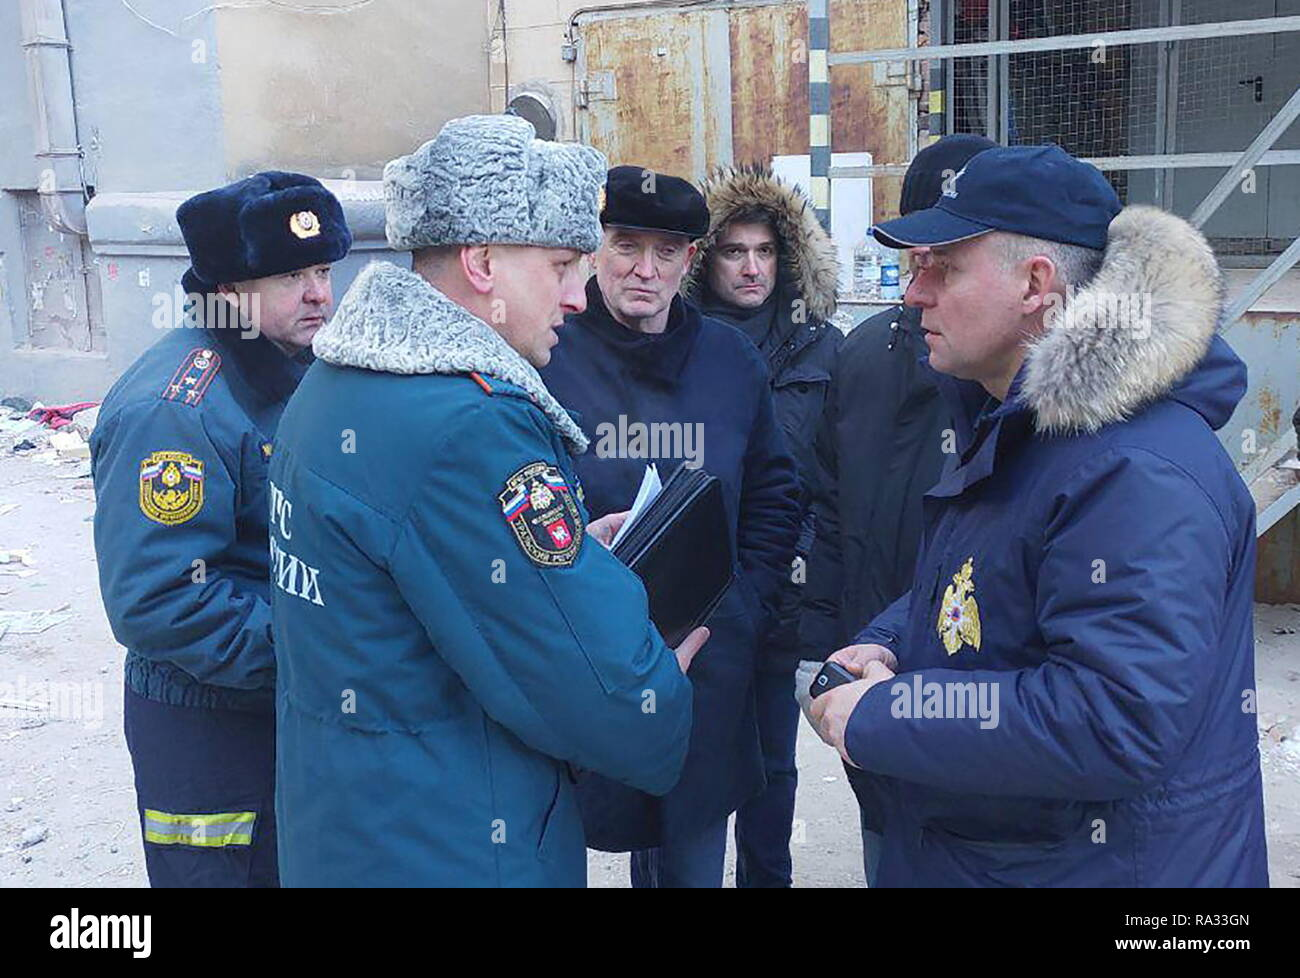 Mgnitogorsk, Russia. 31st Dec, 2018. MAGNITOGORSK, RUSSIA - DECEMBER 31, 2018: Chelyabinsk Region Governor Boris Dubrovsky (C background) and Russia's Emergency Situations Minister Yevgeny Zinichev (R) at the site of an apartment building collapse. A domestic gas blast caused a partial collapse of a residential building at 164 Karla Marksa Prospekt Street killing four people. Chelyabinsk Region Governor Press Office/TASS Credit: ITAR-TASS News Agency/Alamy Live News - Stock Image